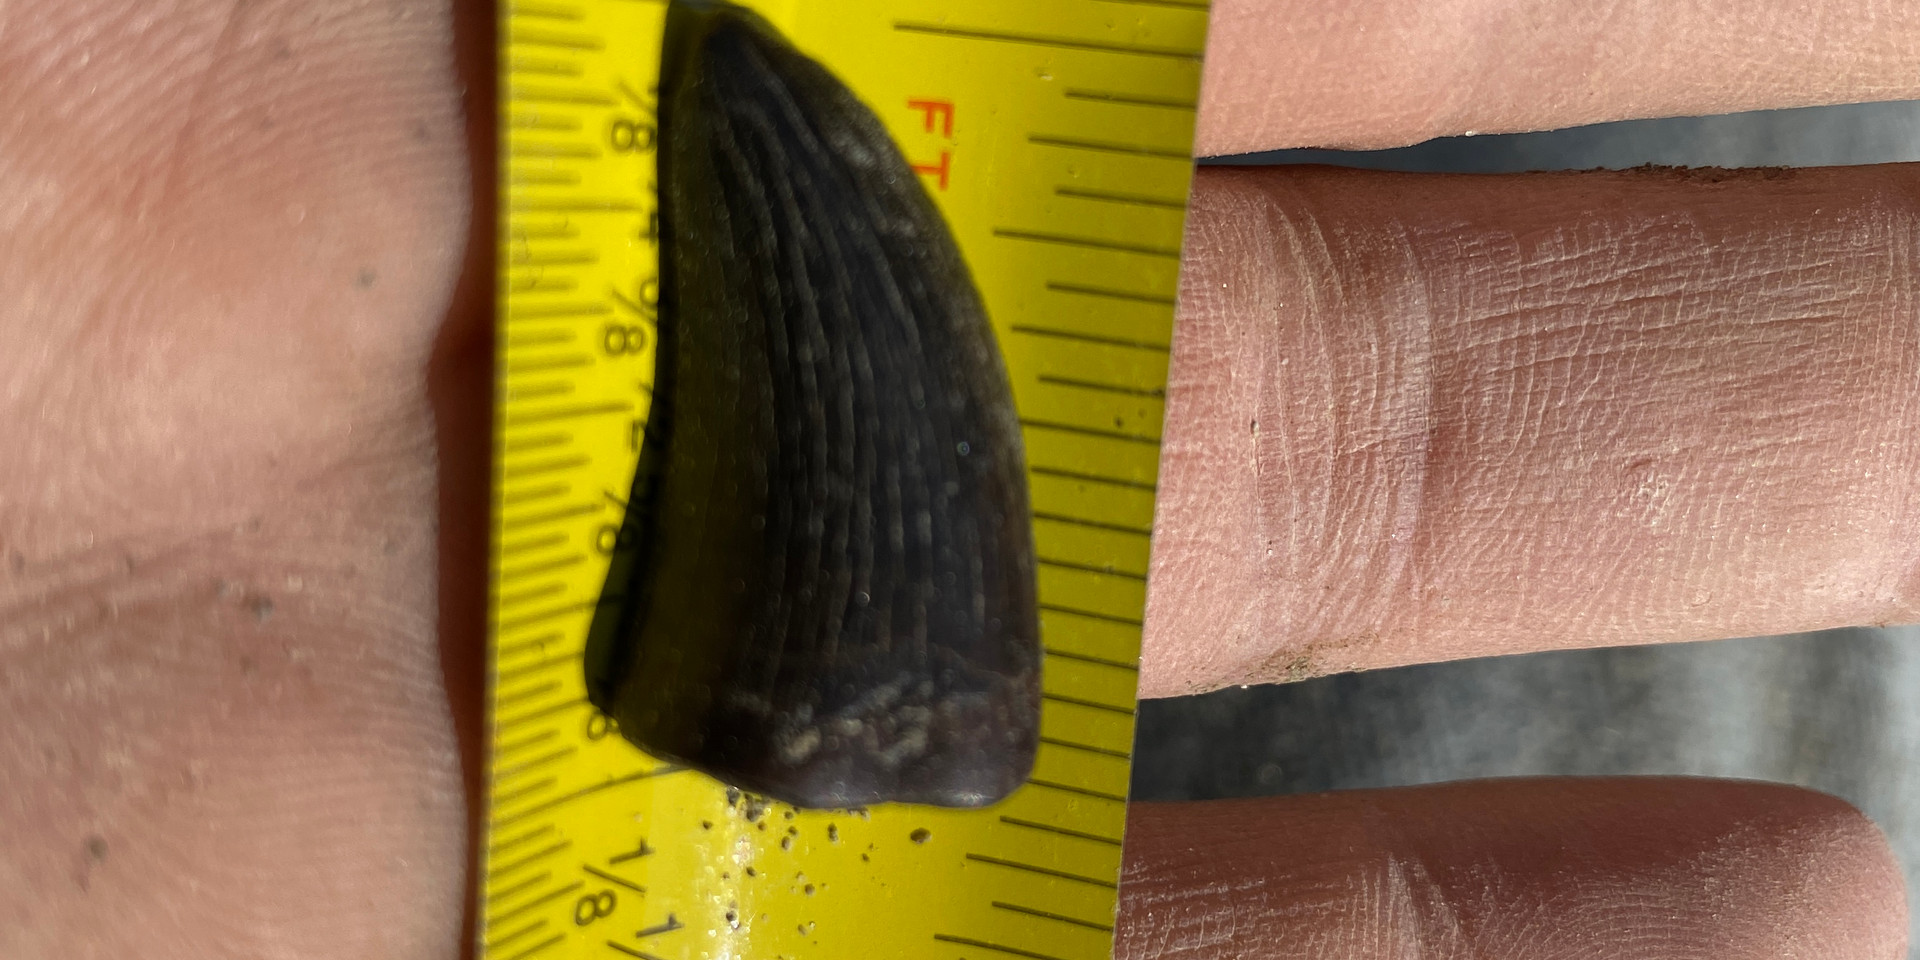 Shed therapod tooth